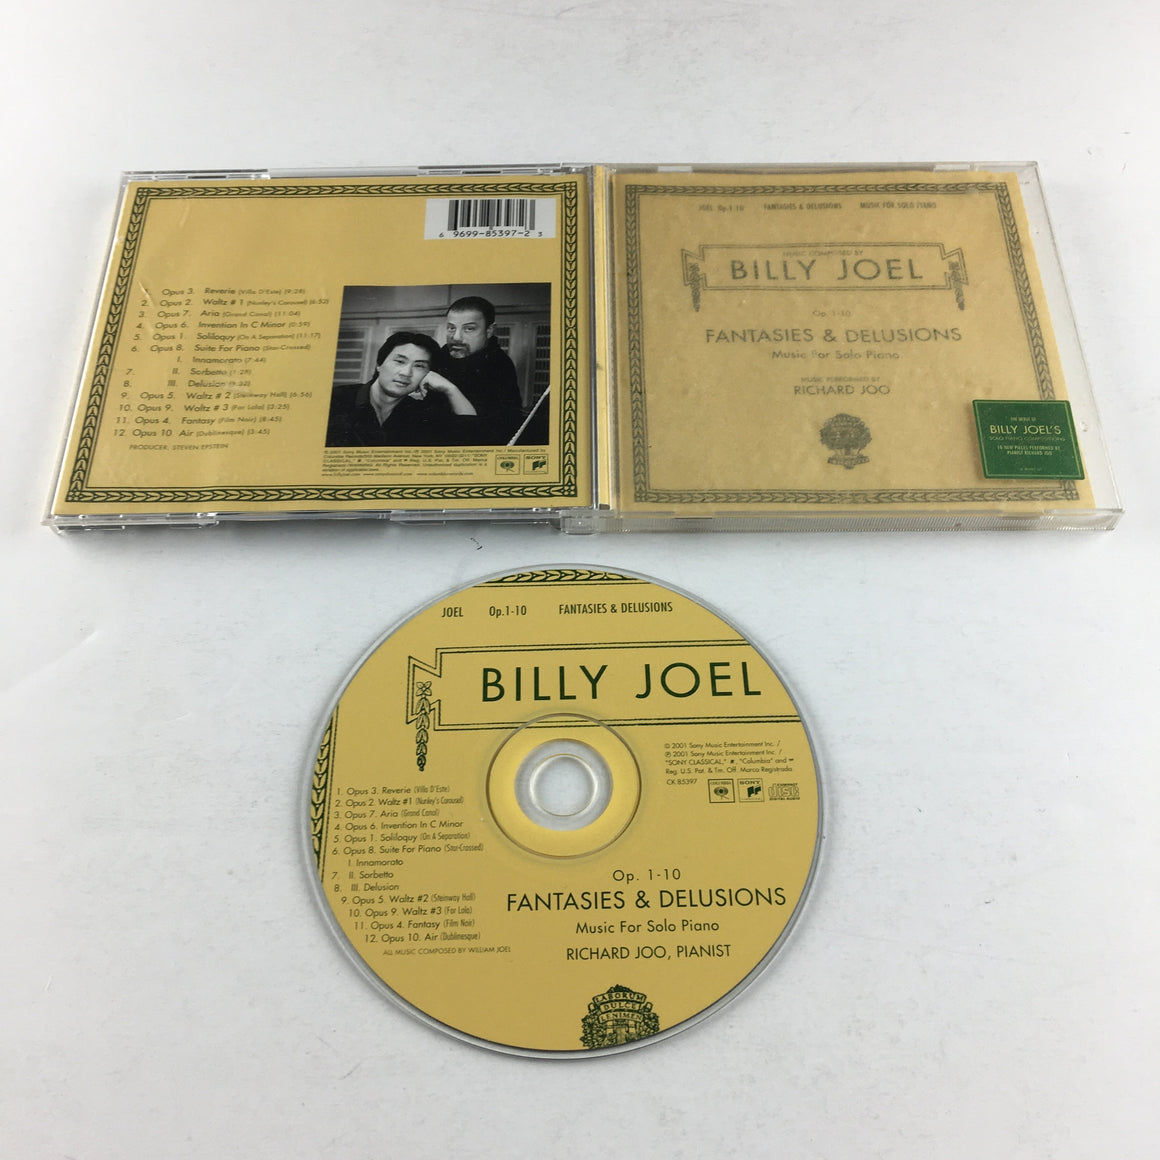 Billy Joel And Richard Joo Fantasies & Delusions Used CD VG+ CK 85397